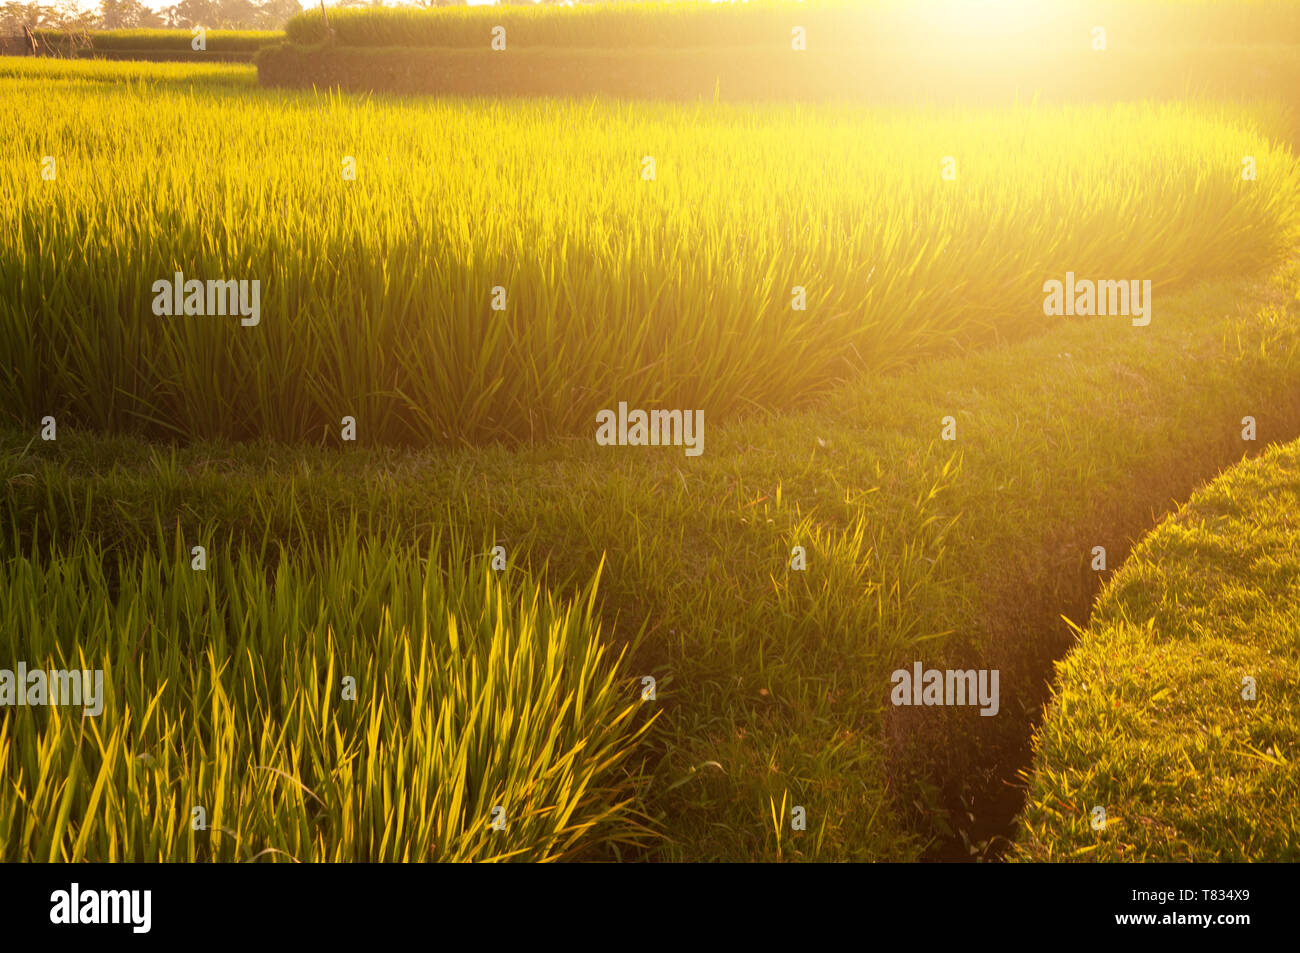 Terrace paddy rice fields in evening sunset, Bali, Indonesia. - Stock Image